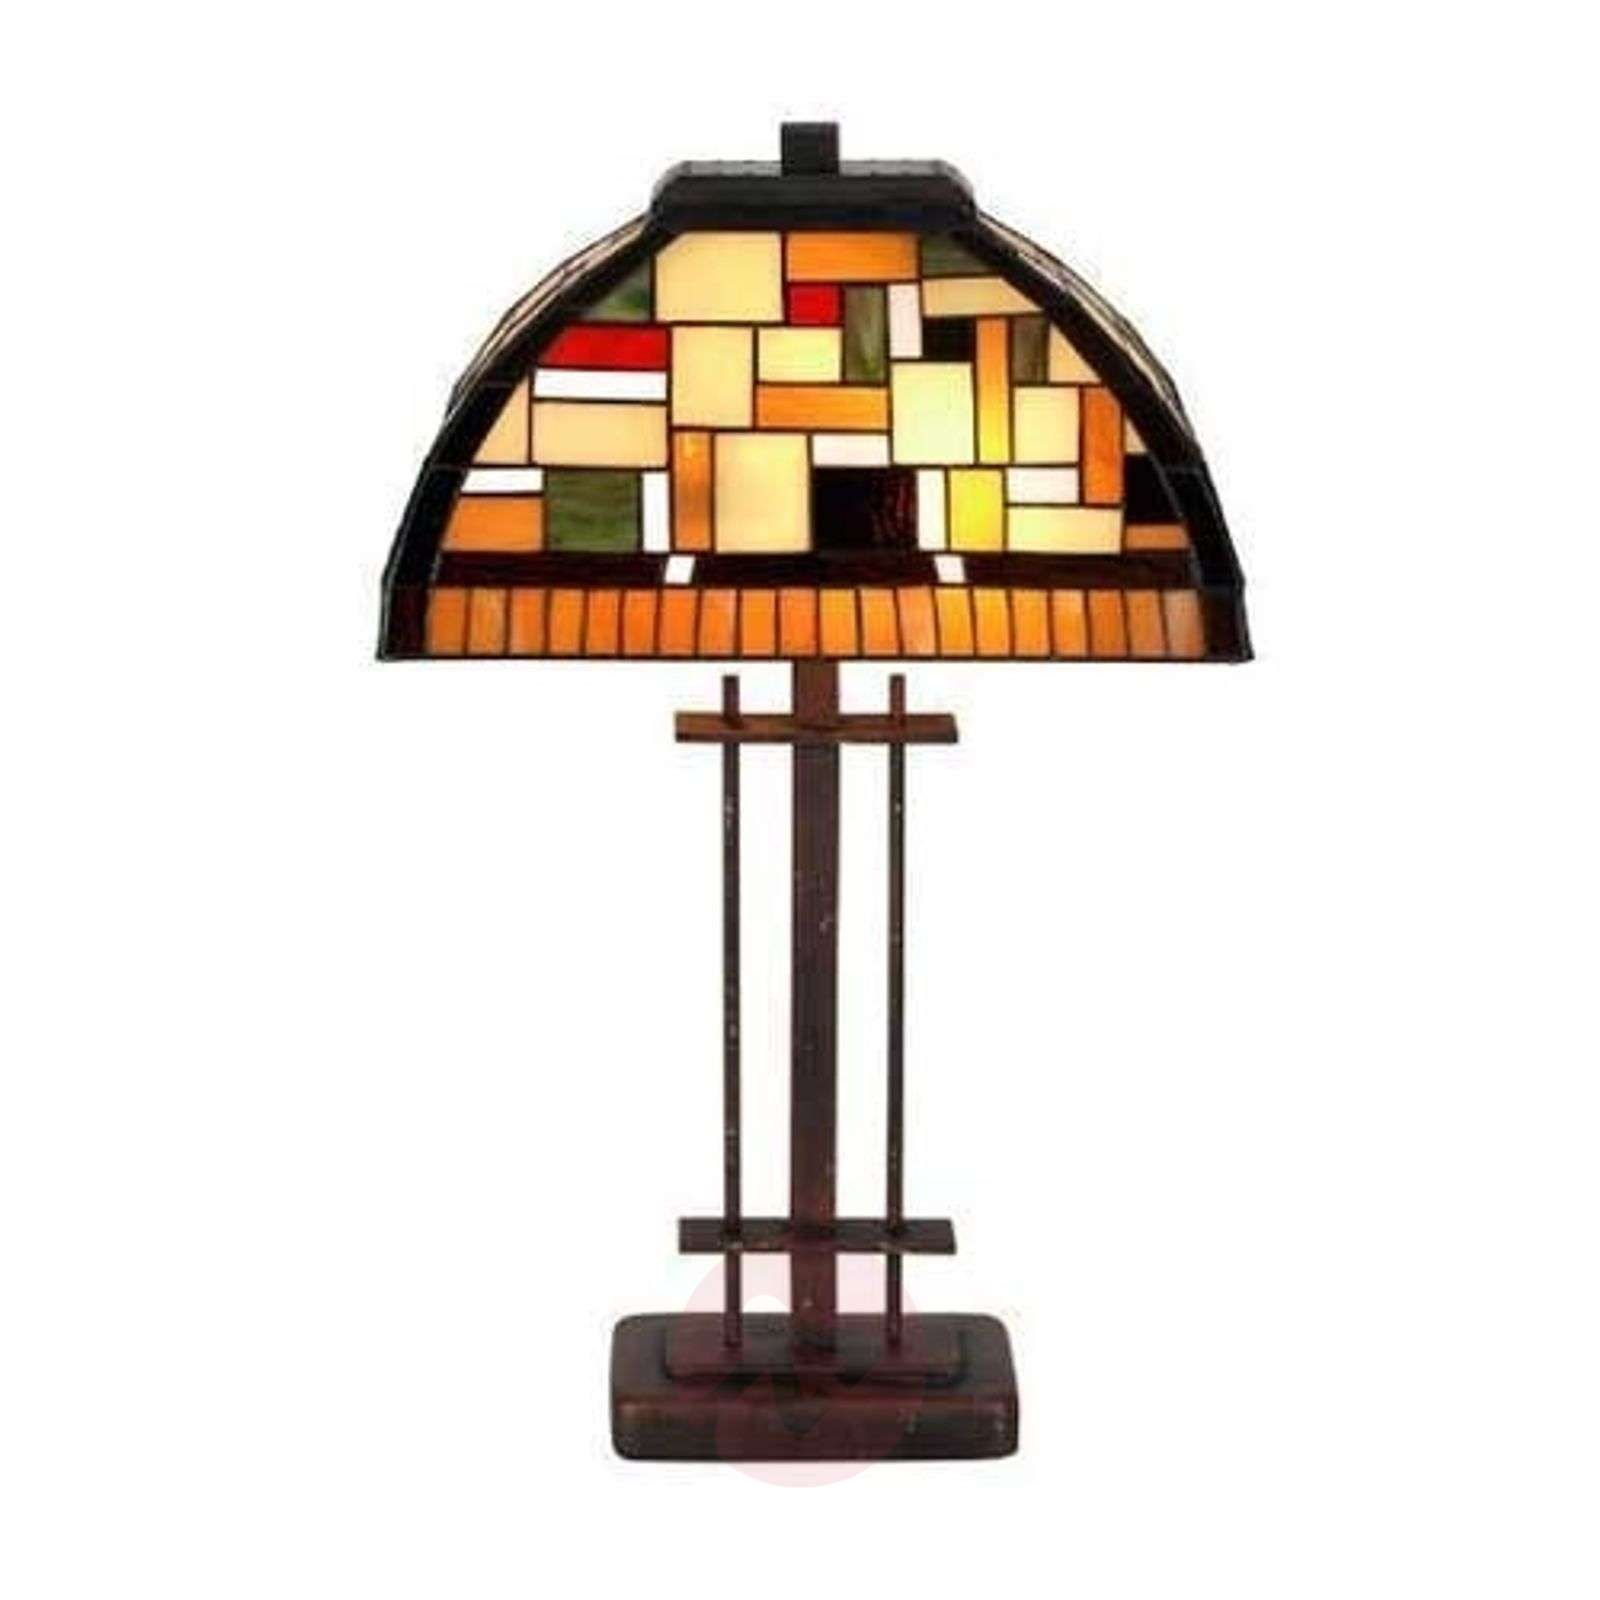 MOSAICA table lamp in Tiffany style-1032204-01